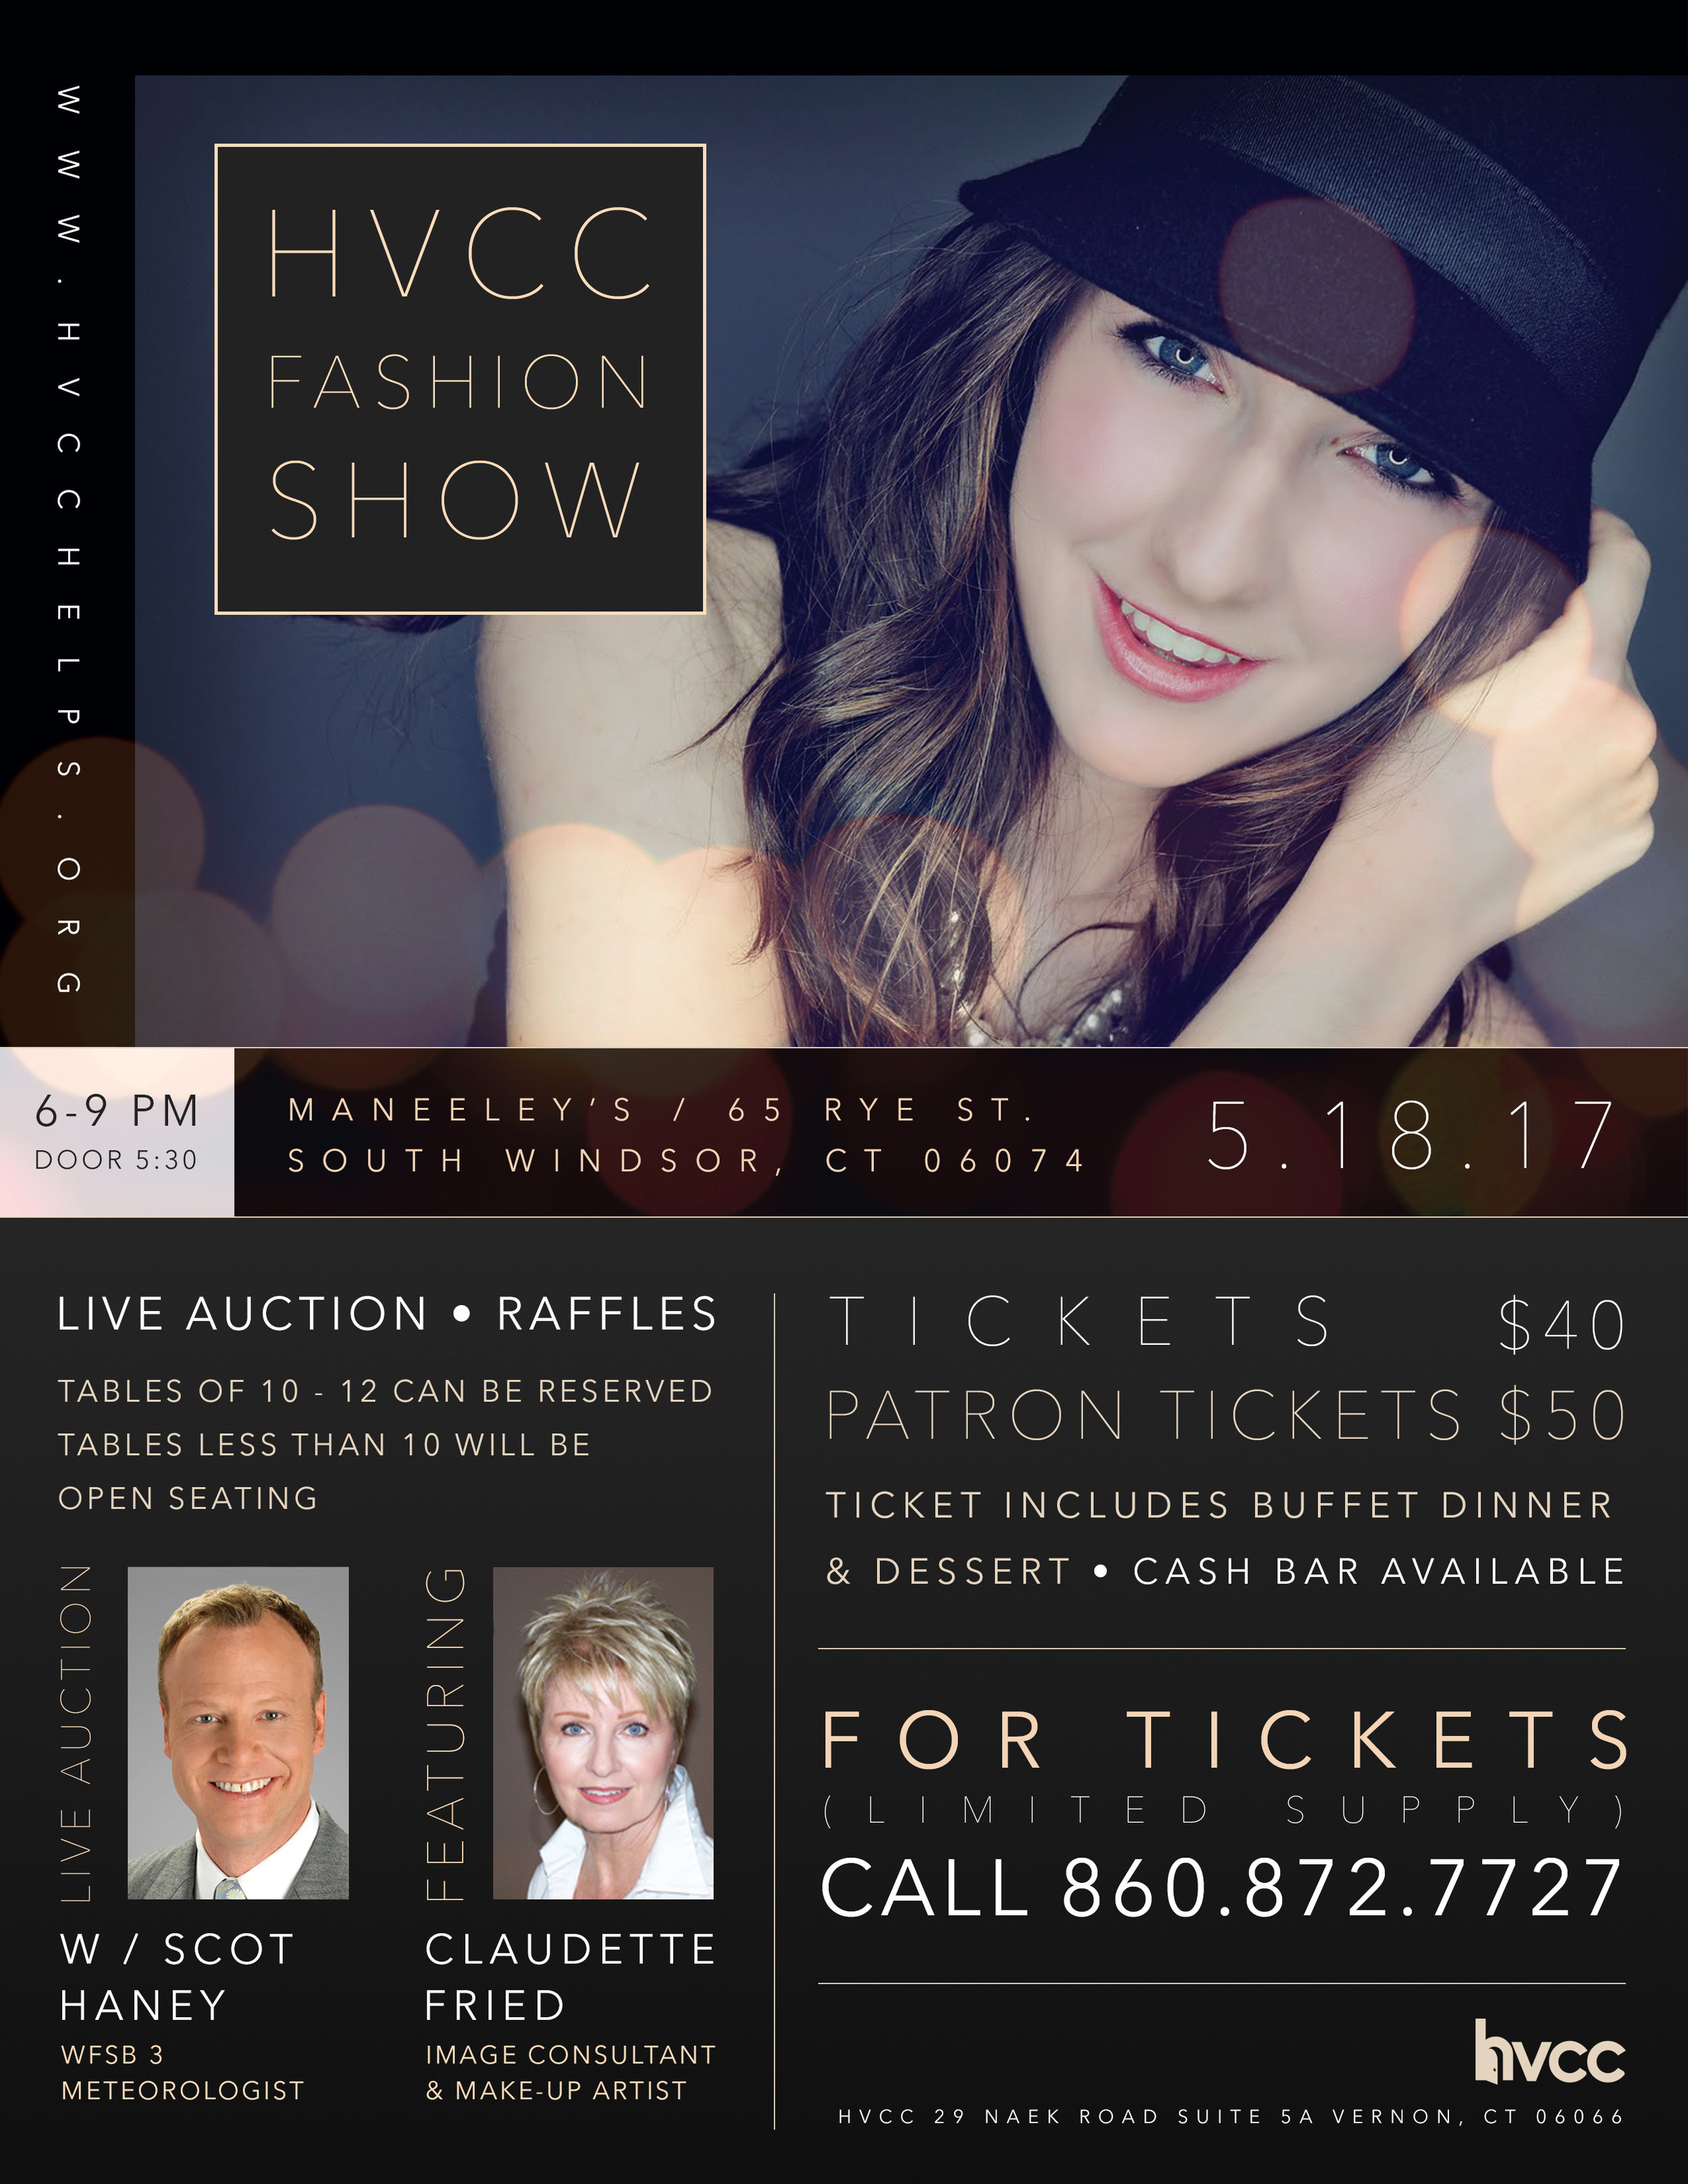 HVCC fashion show promotion • Print/Web